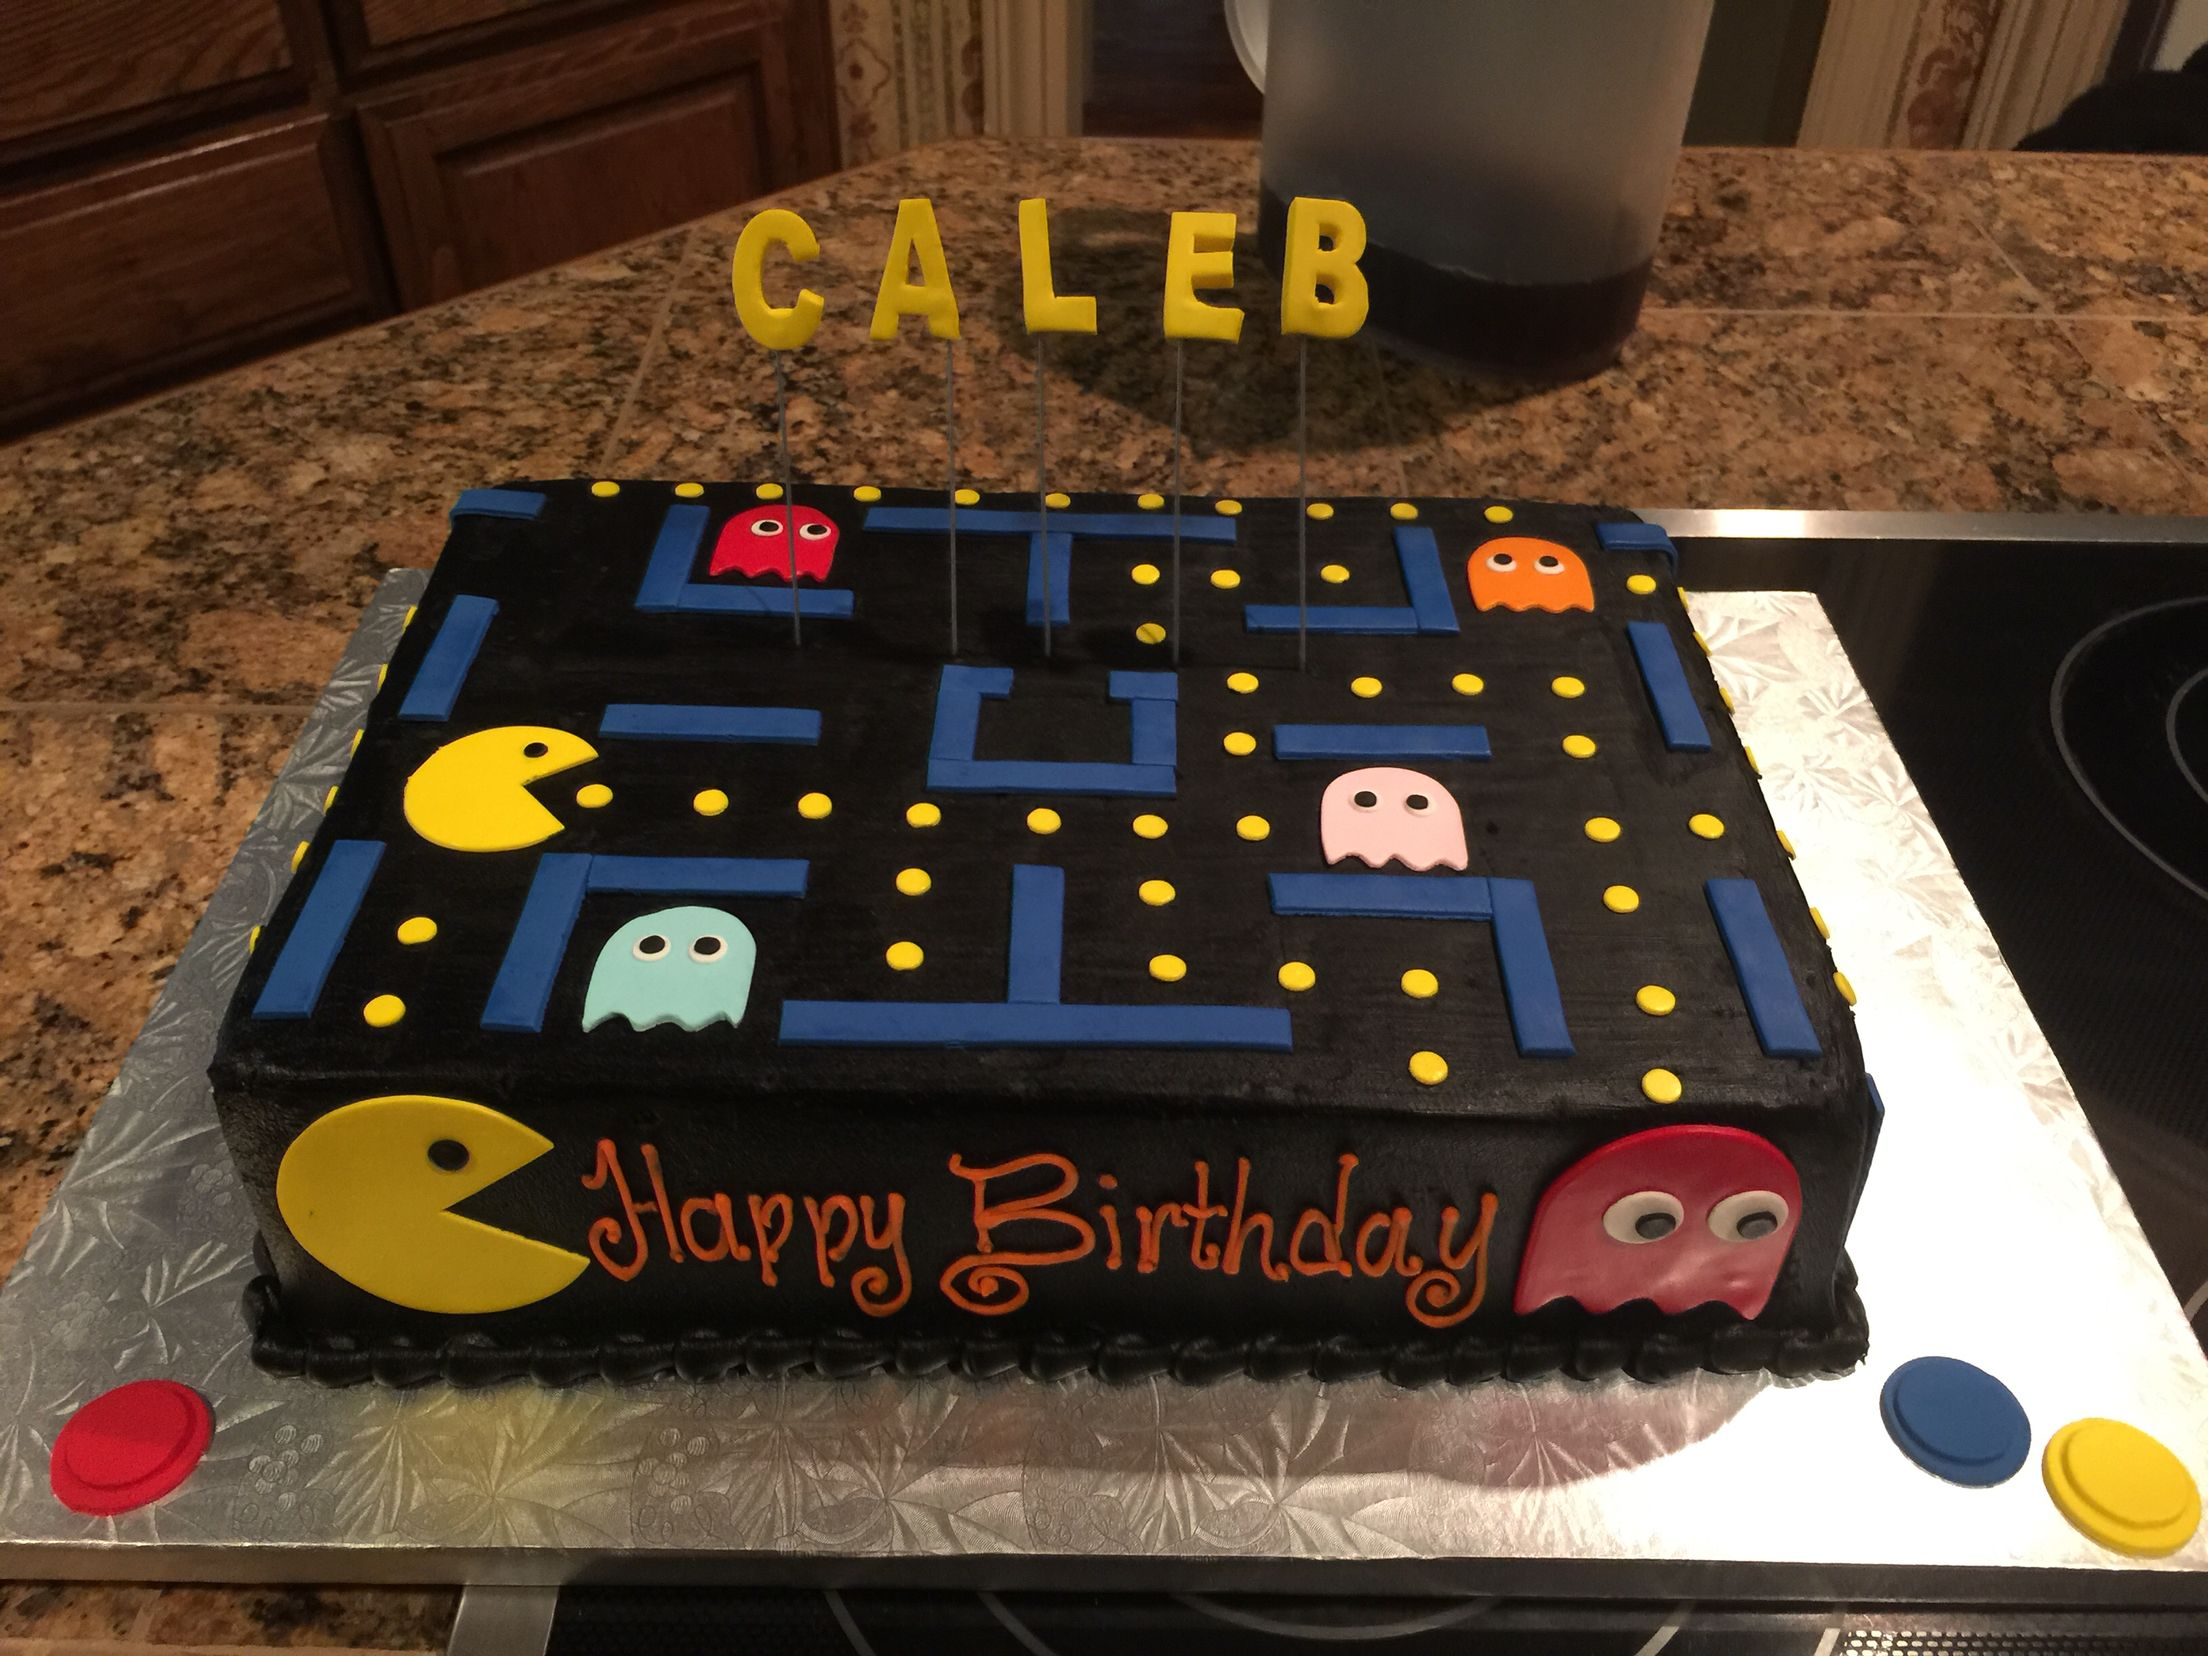 Pacman Cake Video Game Birthday Party Ideas Pinterest - Video game birthday cake